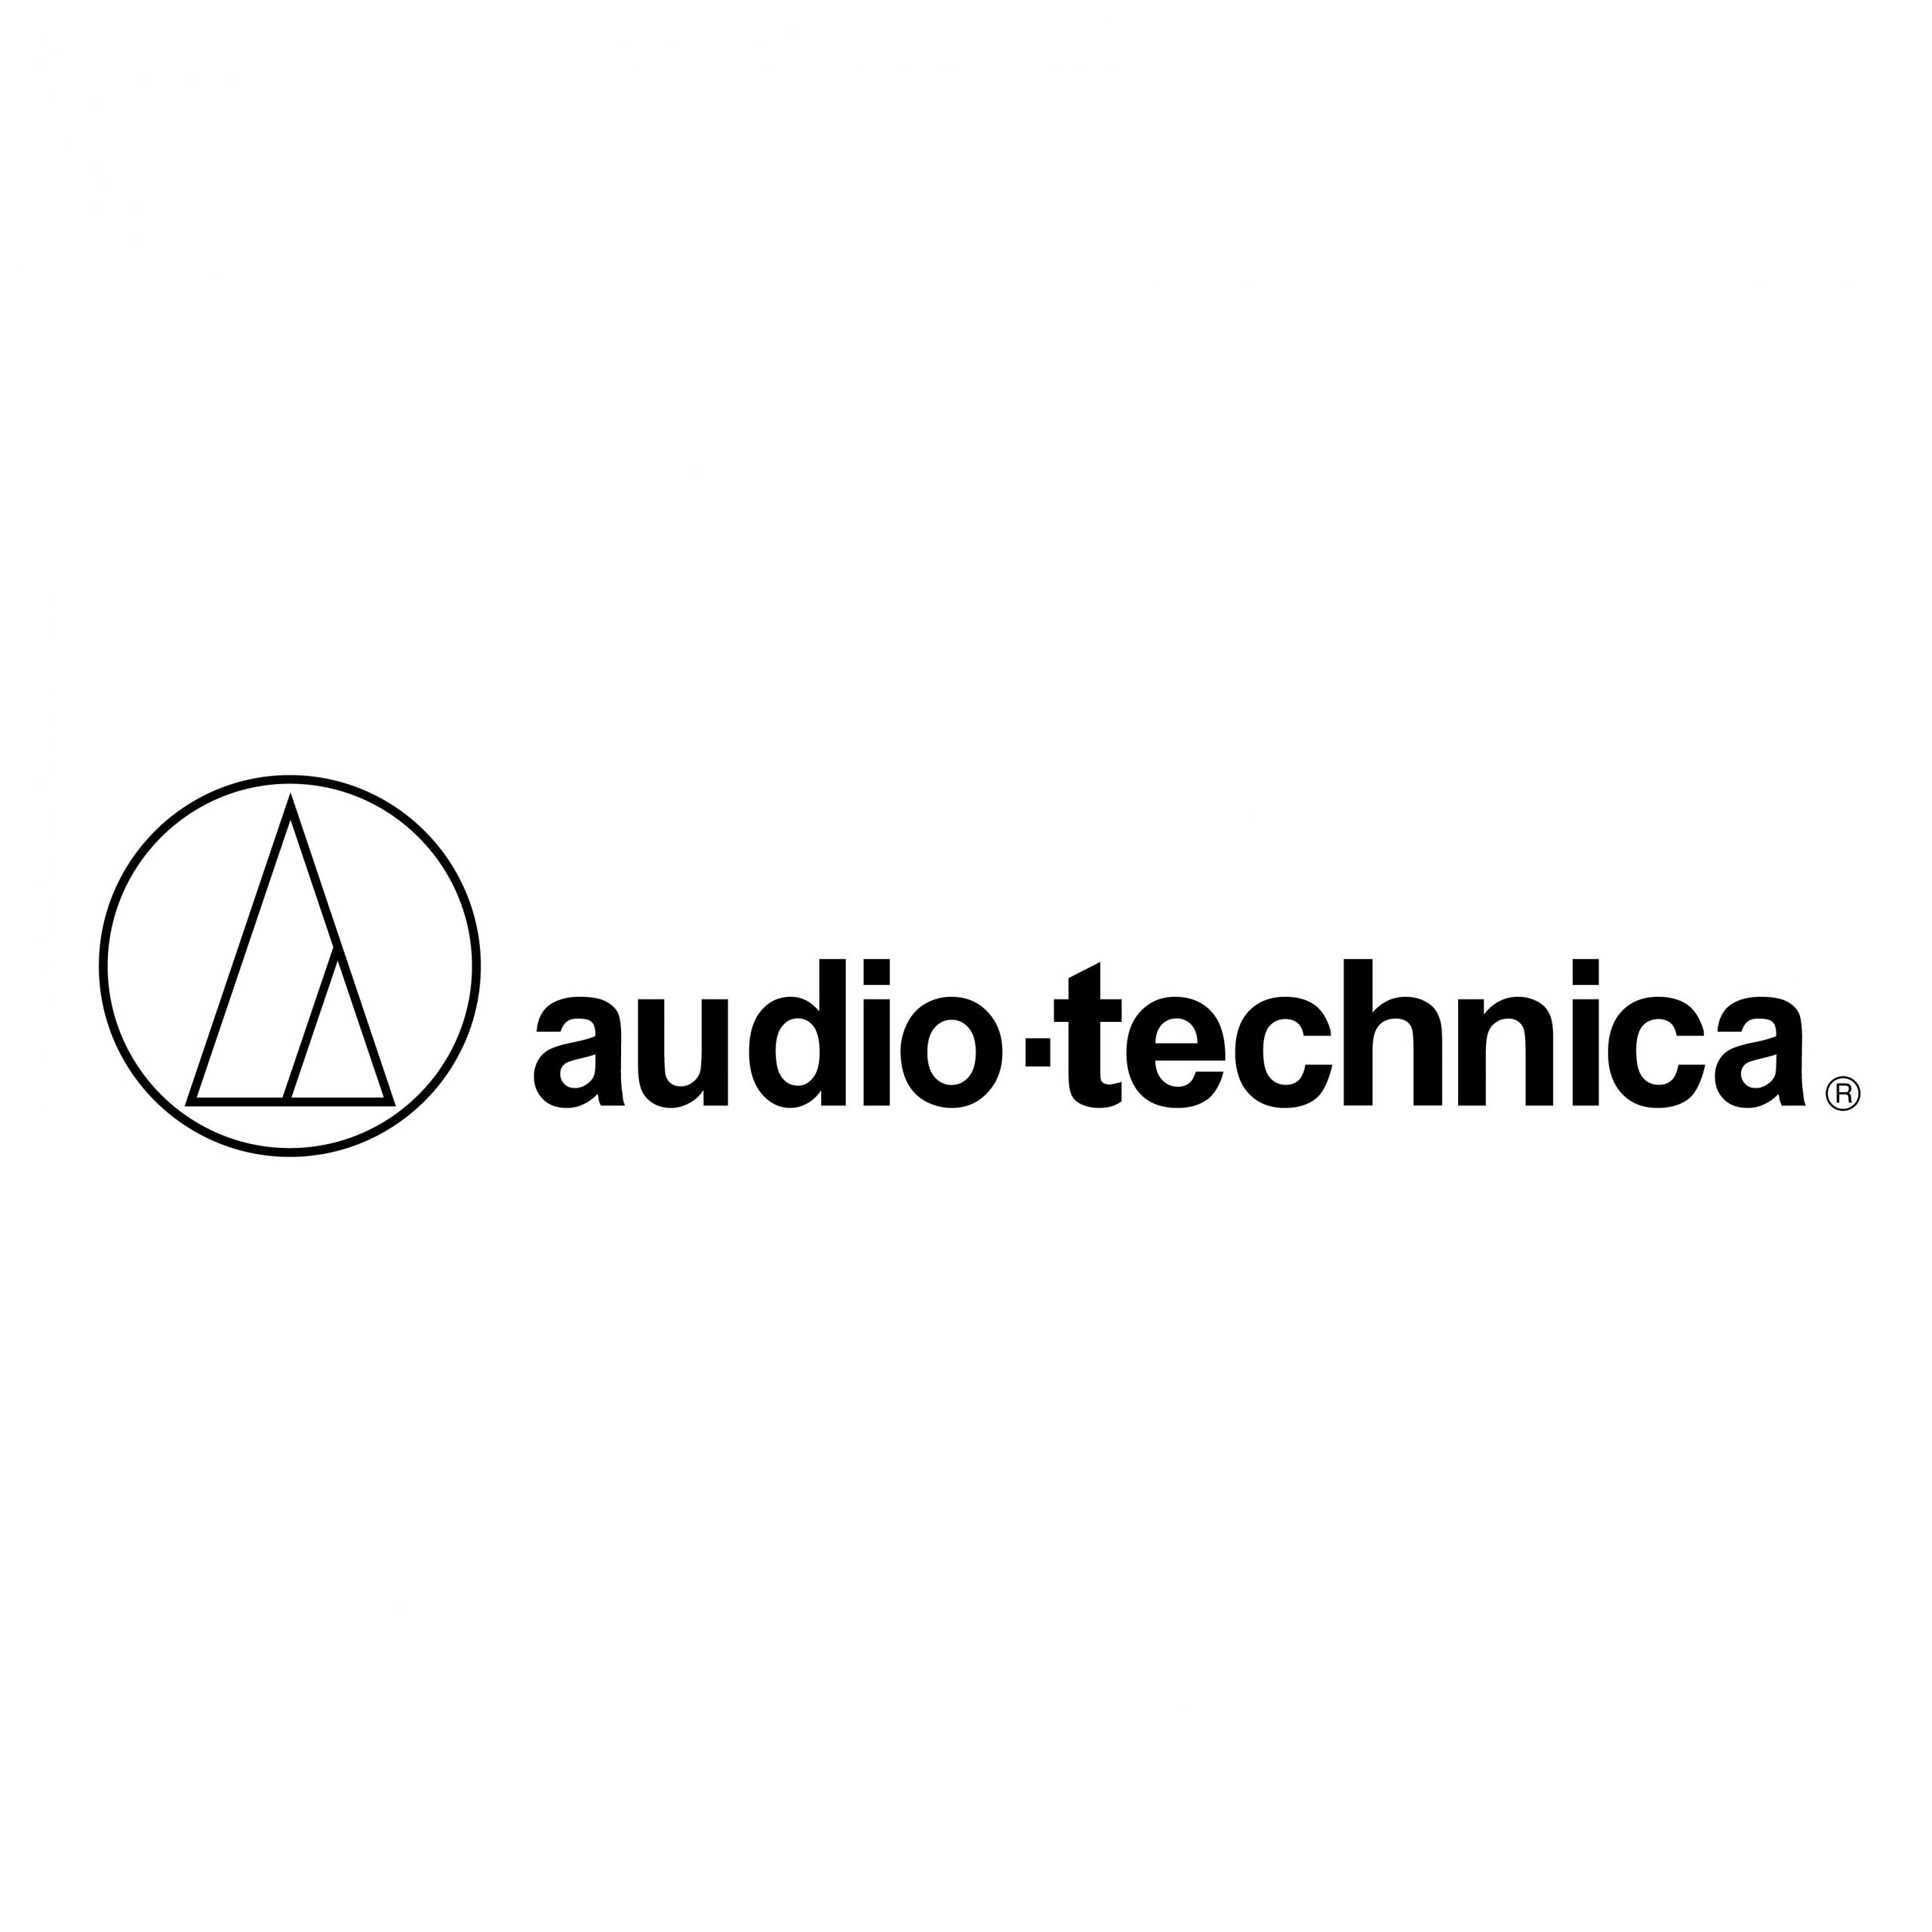 audio-technica-logo-vector